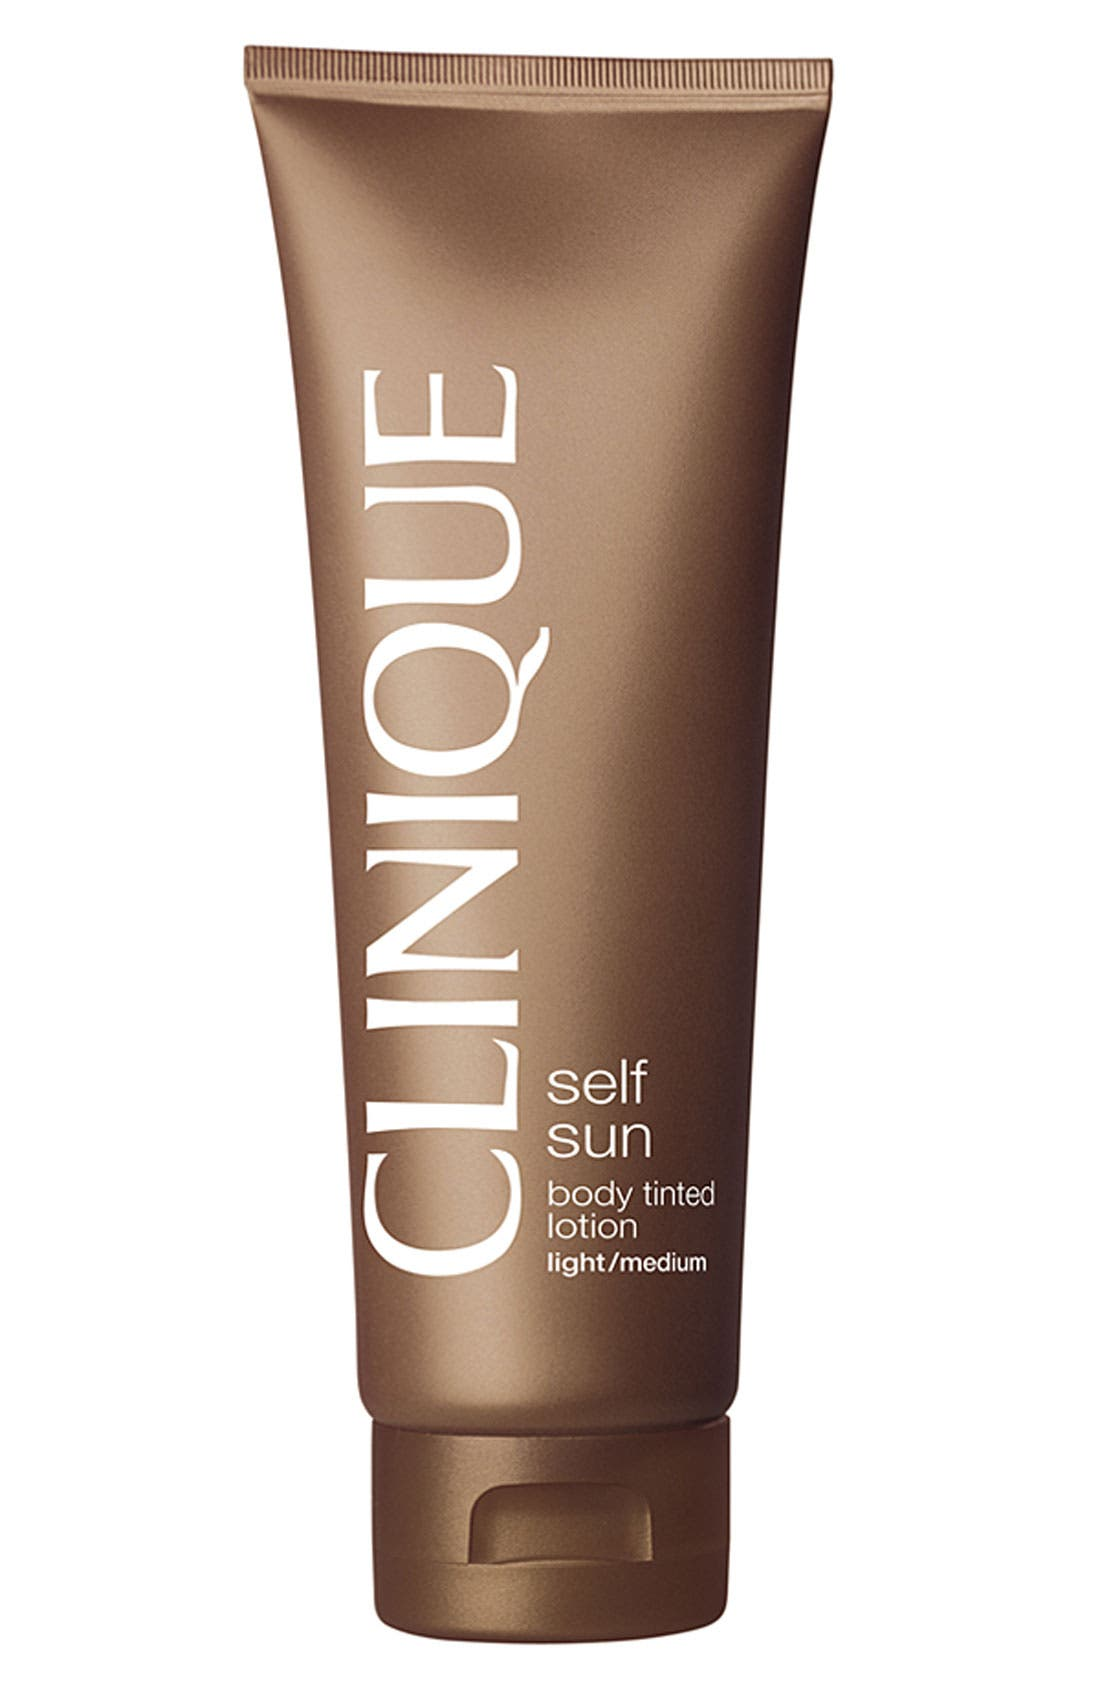 CLINIQUE,                             Self Sun Body Tinted Lotion,                             Main thumbnail 1, color,                             LIGHT/MEDIUM